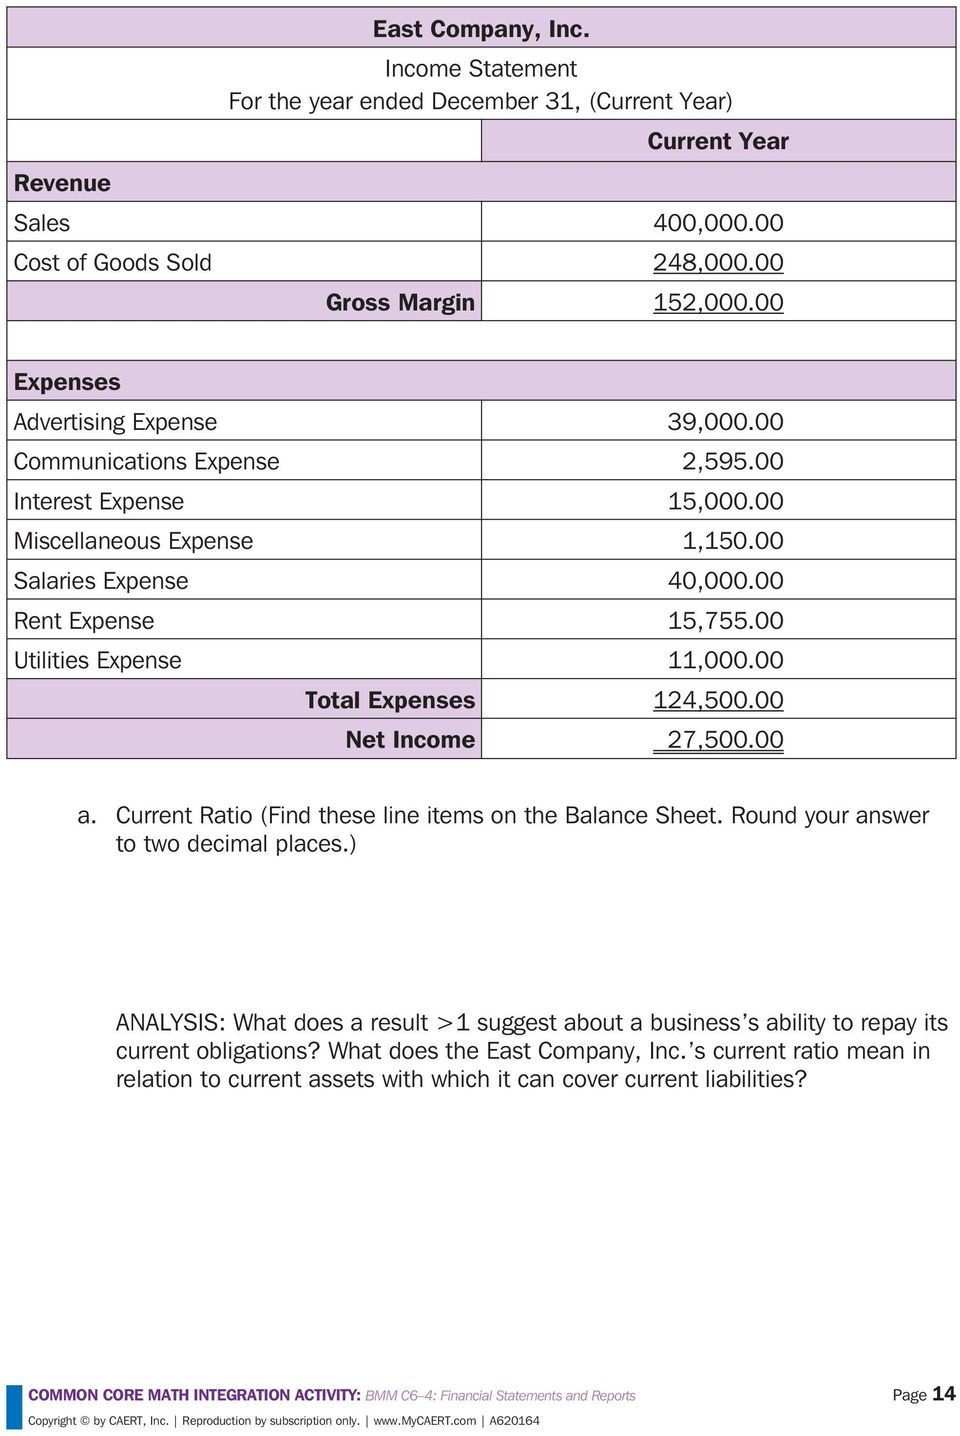 00 Utilities Expense 11,000.00 Total Expenses 124,500.00 Net Income 27,500.00 a. Current Ratio (Find these line items on the Balance Sheet. Round your answer to two decimal places.